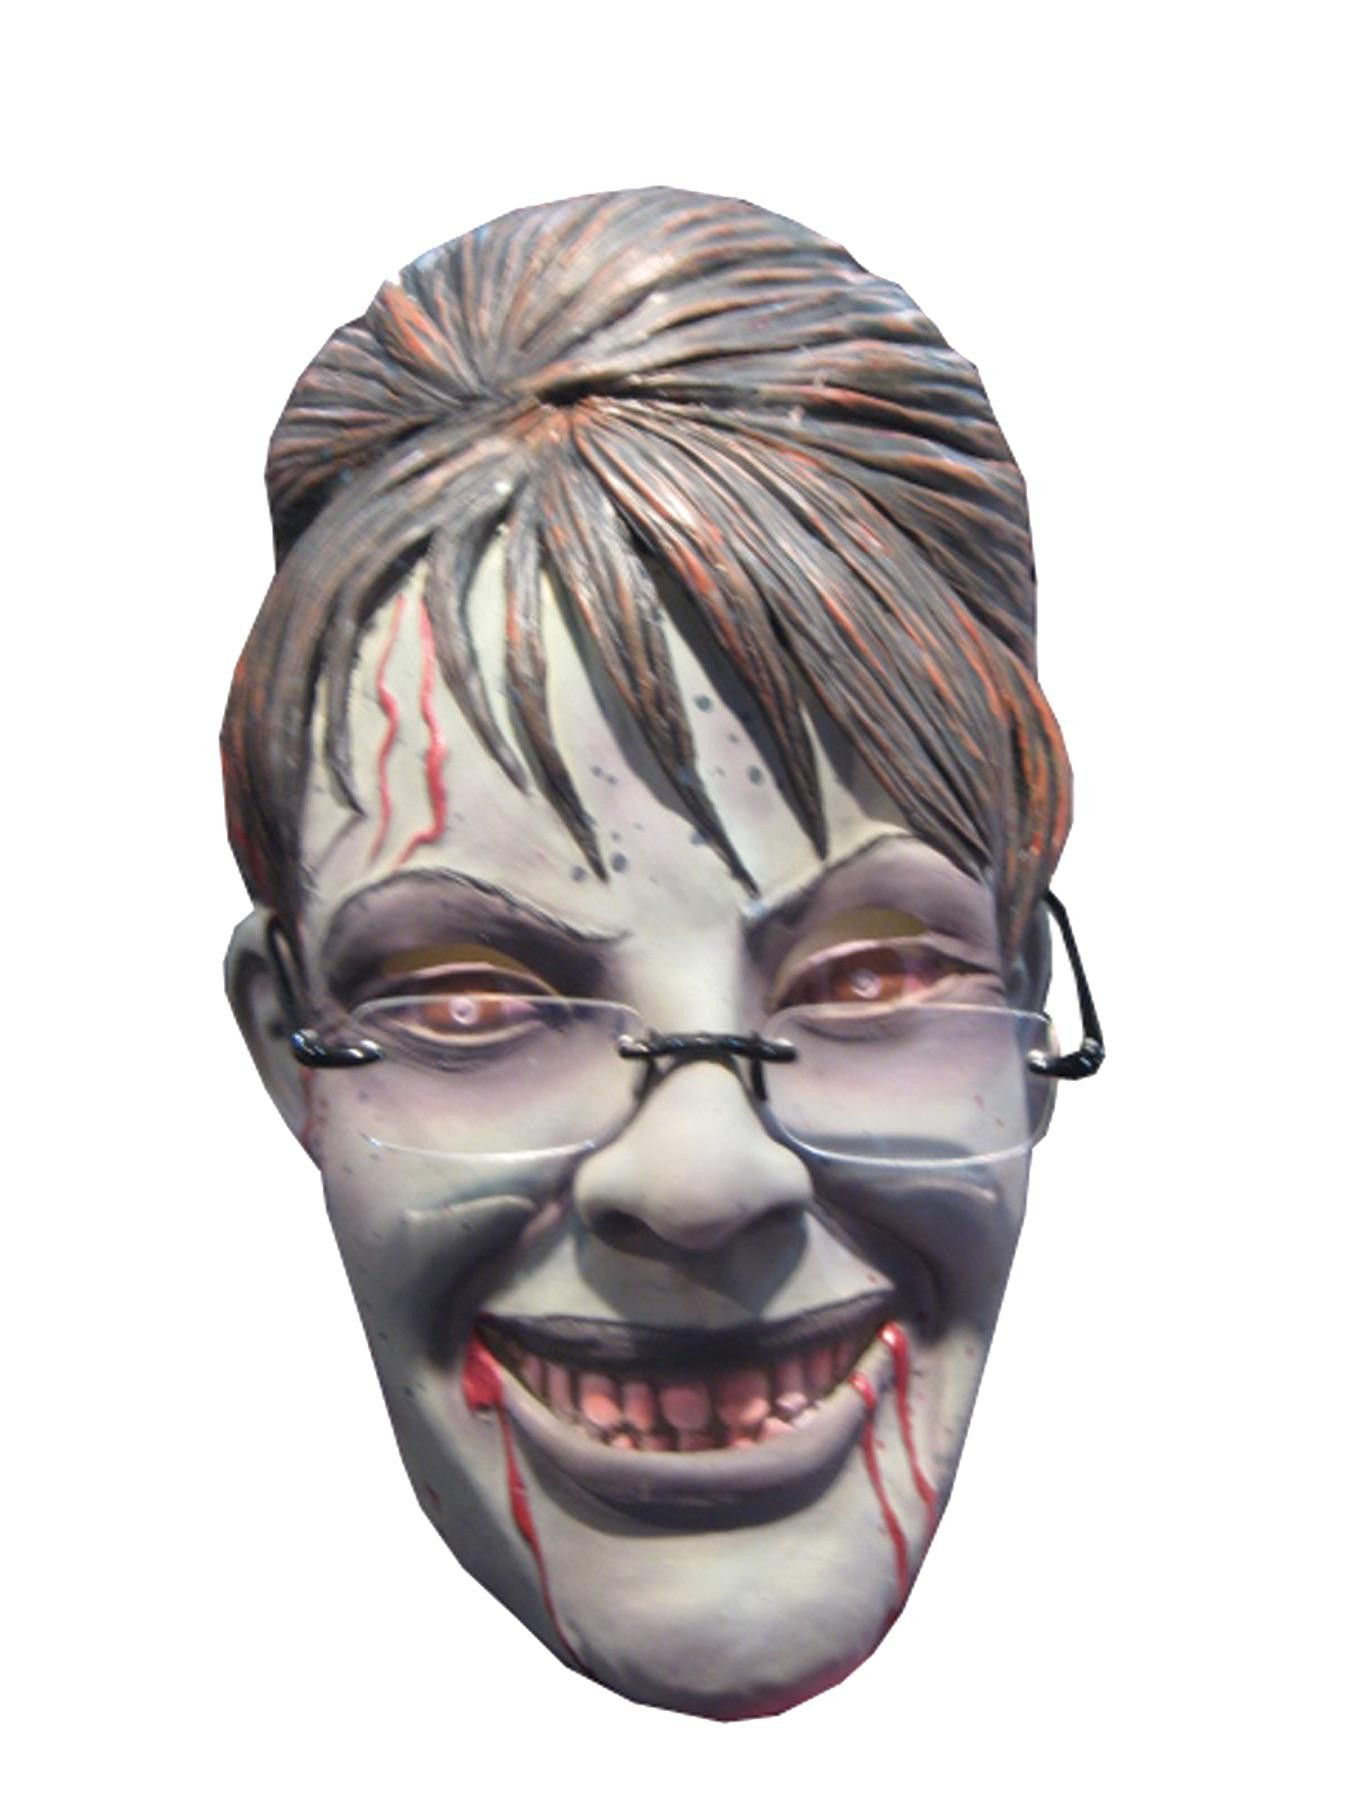 sarah rogue zombie mask | products | pinterest | zombie mask